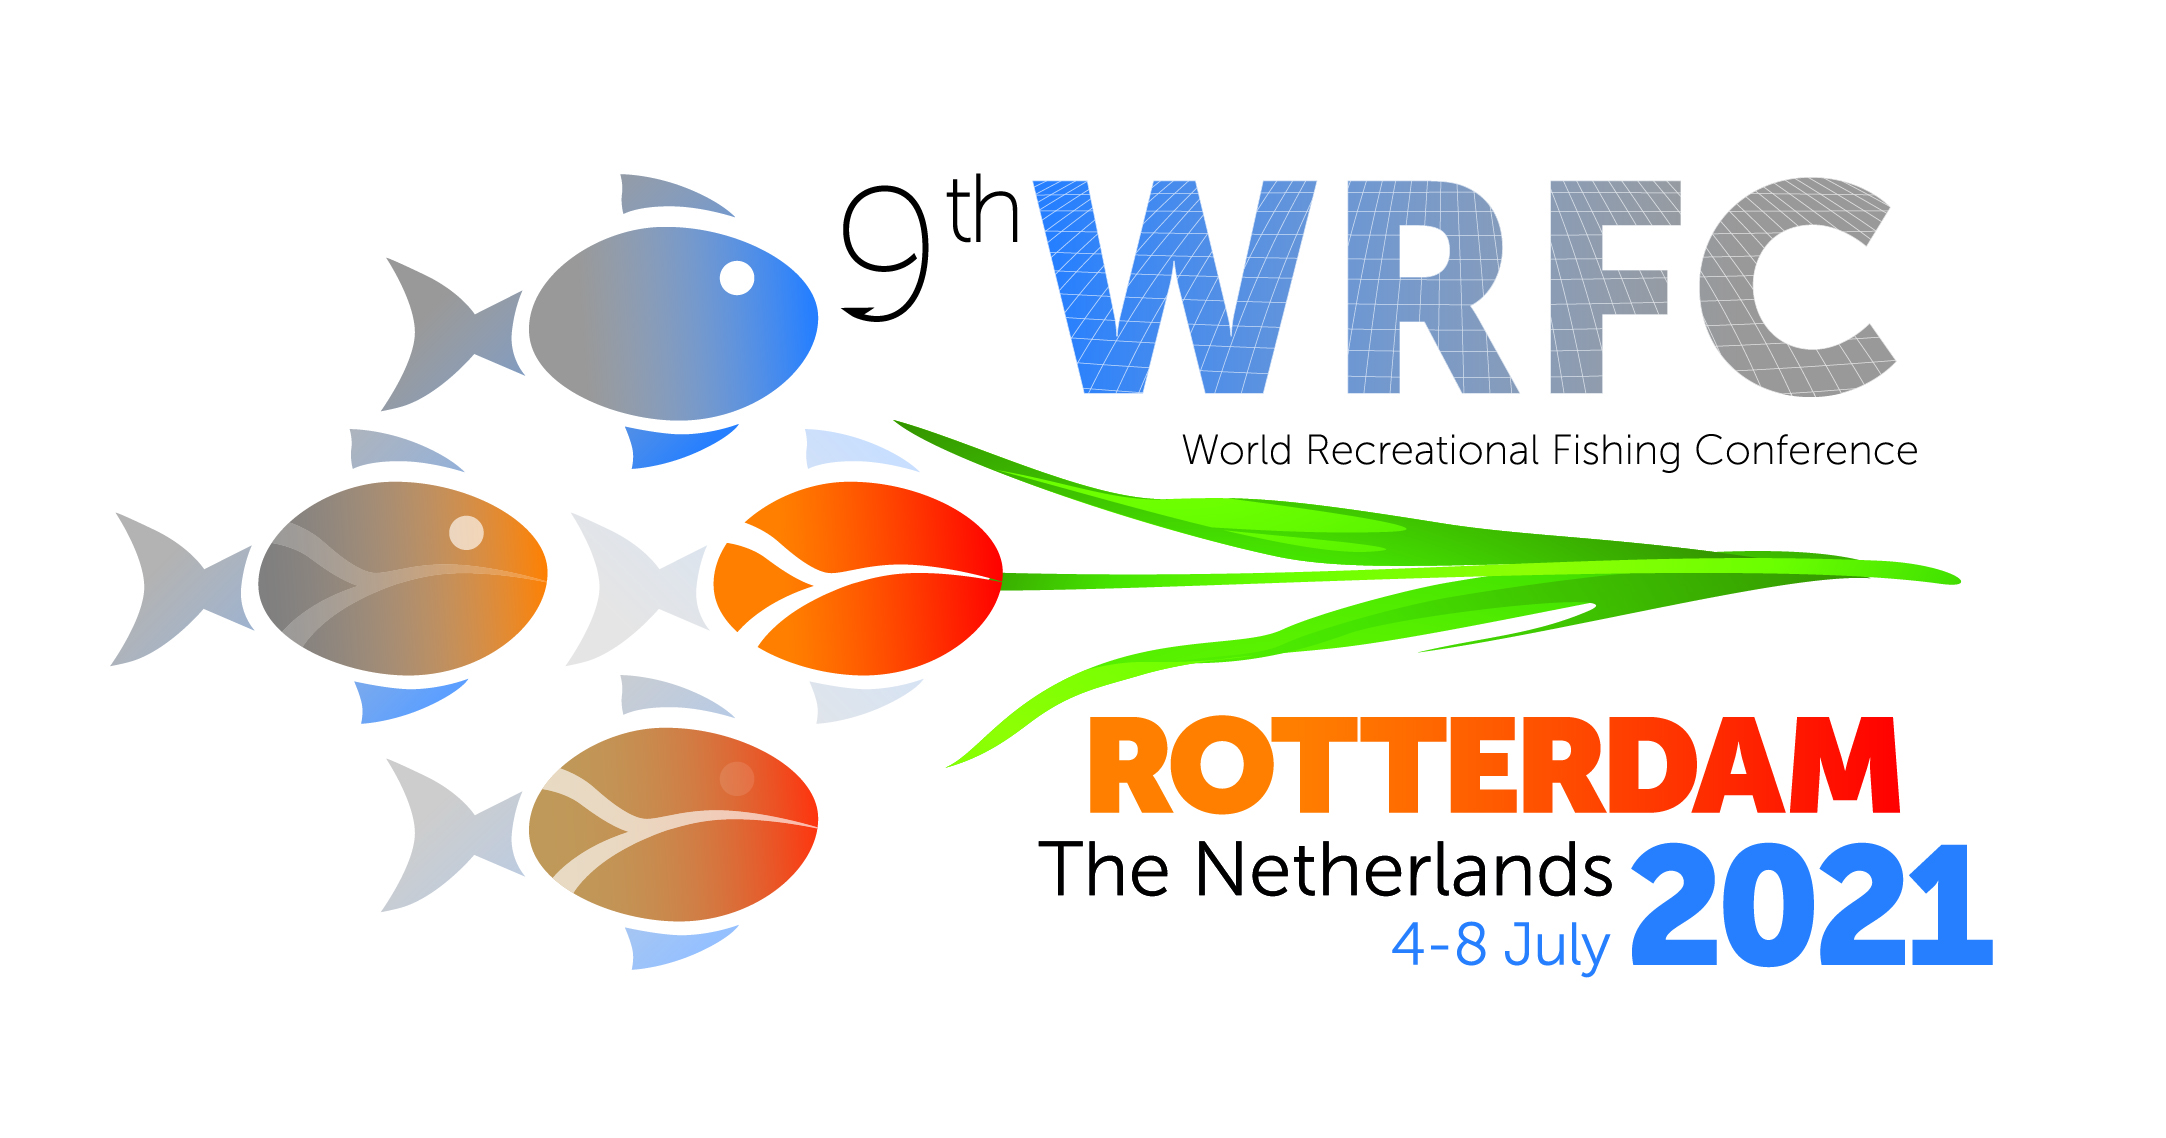 World Recreational Fishing Conference